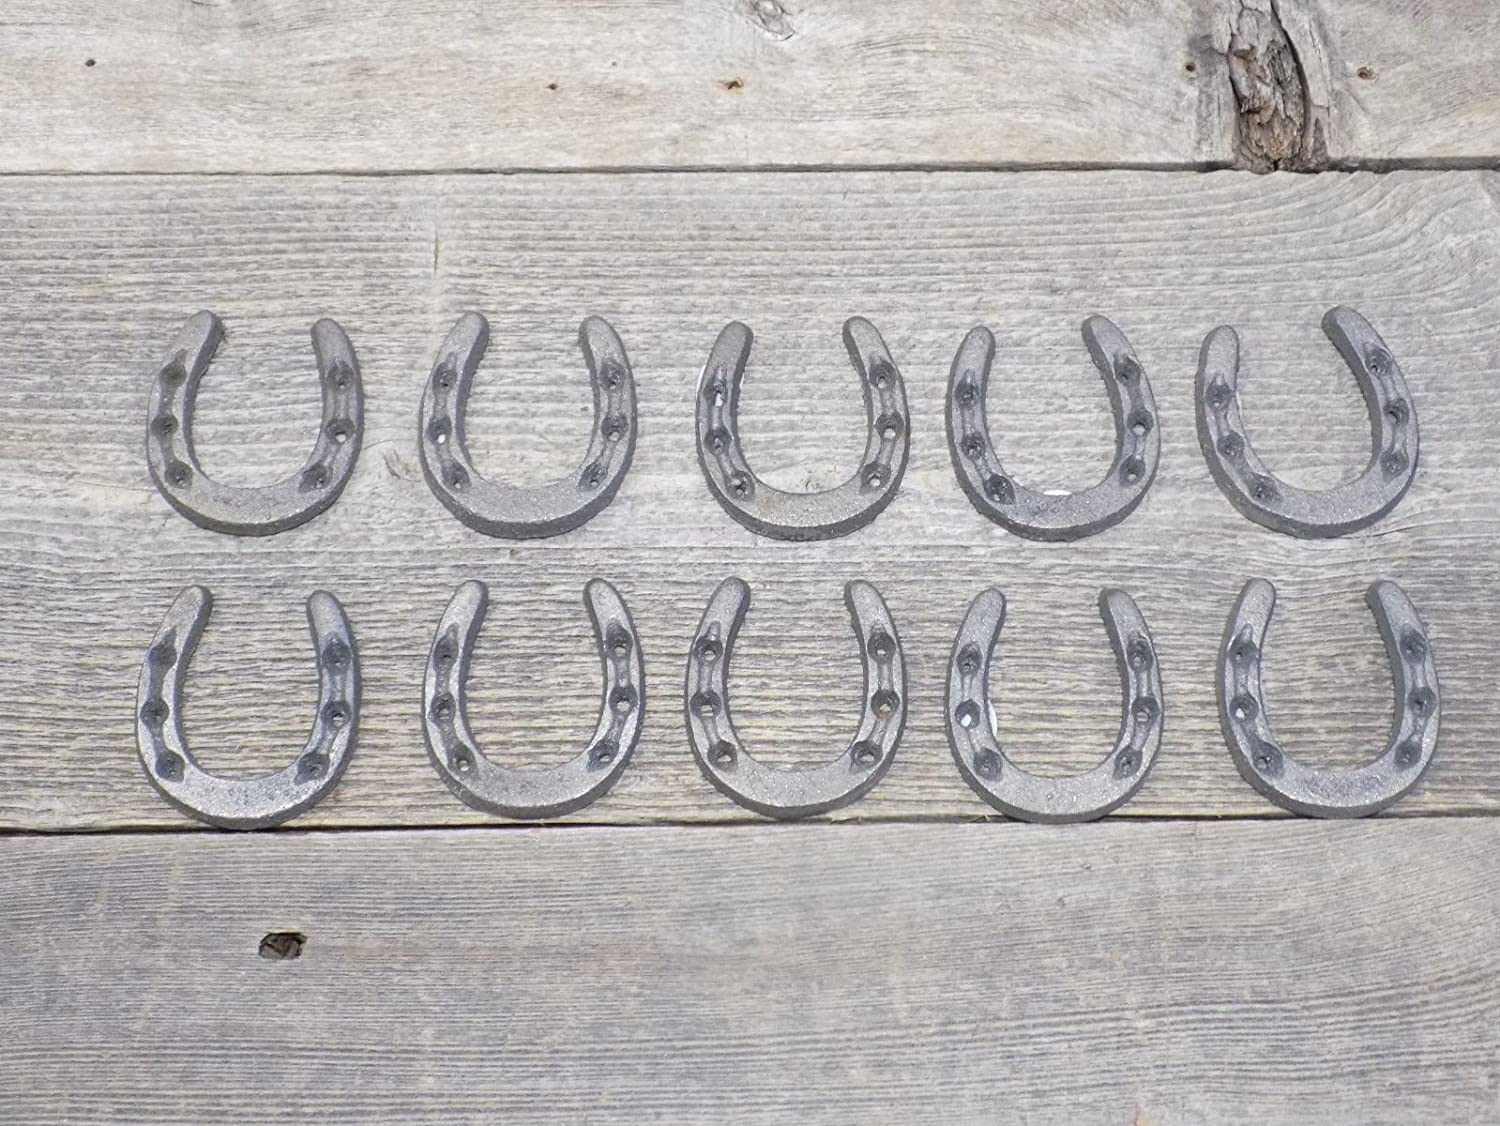 SMALL CAST IRON HORSESHOES • CRAFTS HOME DÉCOR, HORSESHOE/HORSE SHOE, SMALL TINY NIKNAK - PACK OF 10